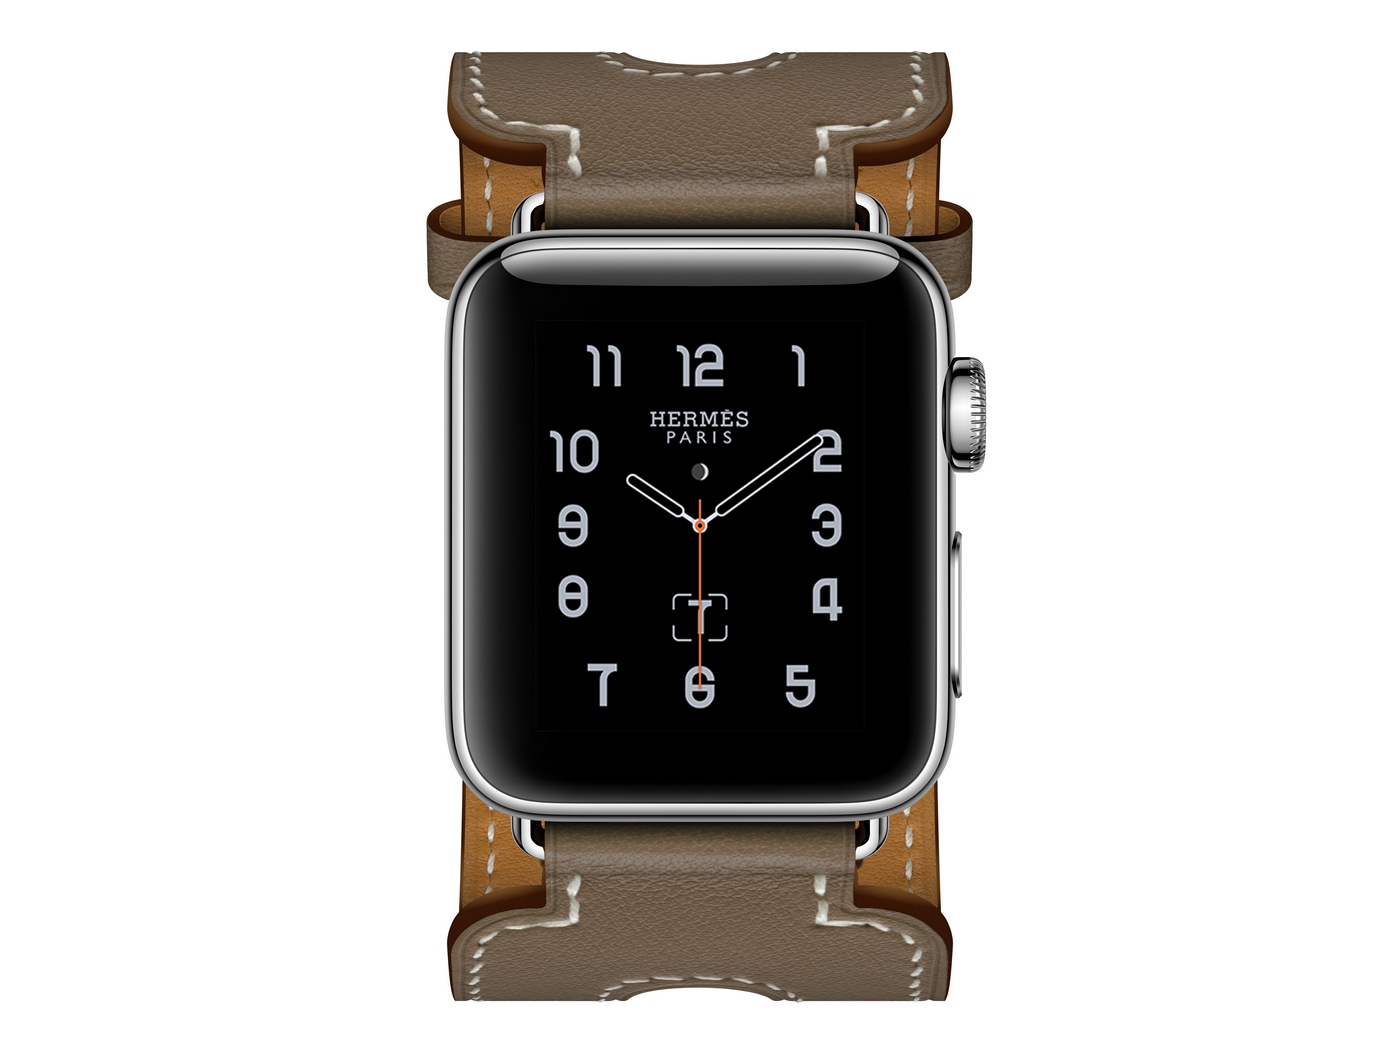 Hermes styles the new Apple watch